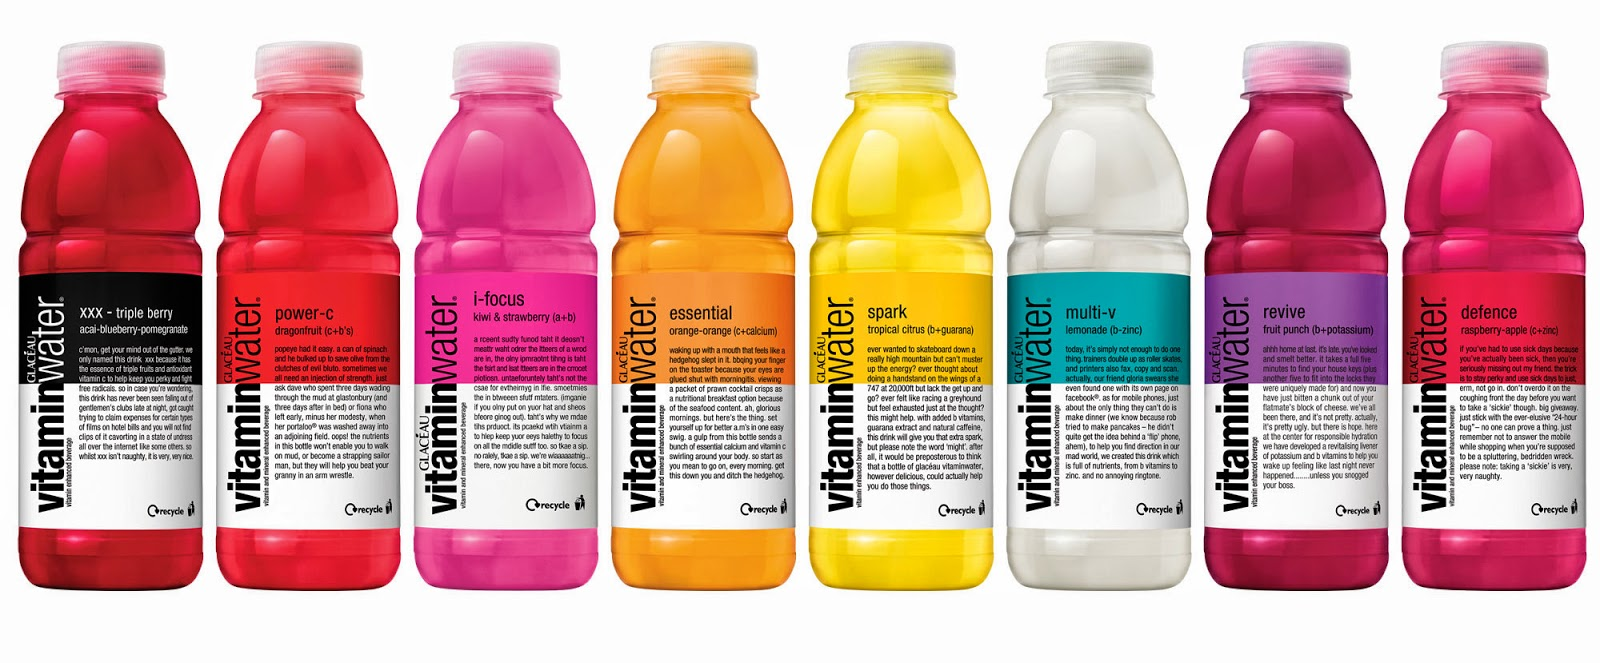 Low Price Deals On Vitaminwater Windex